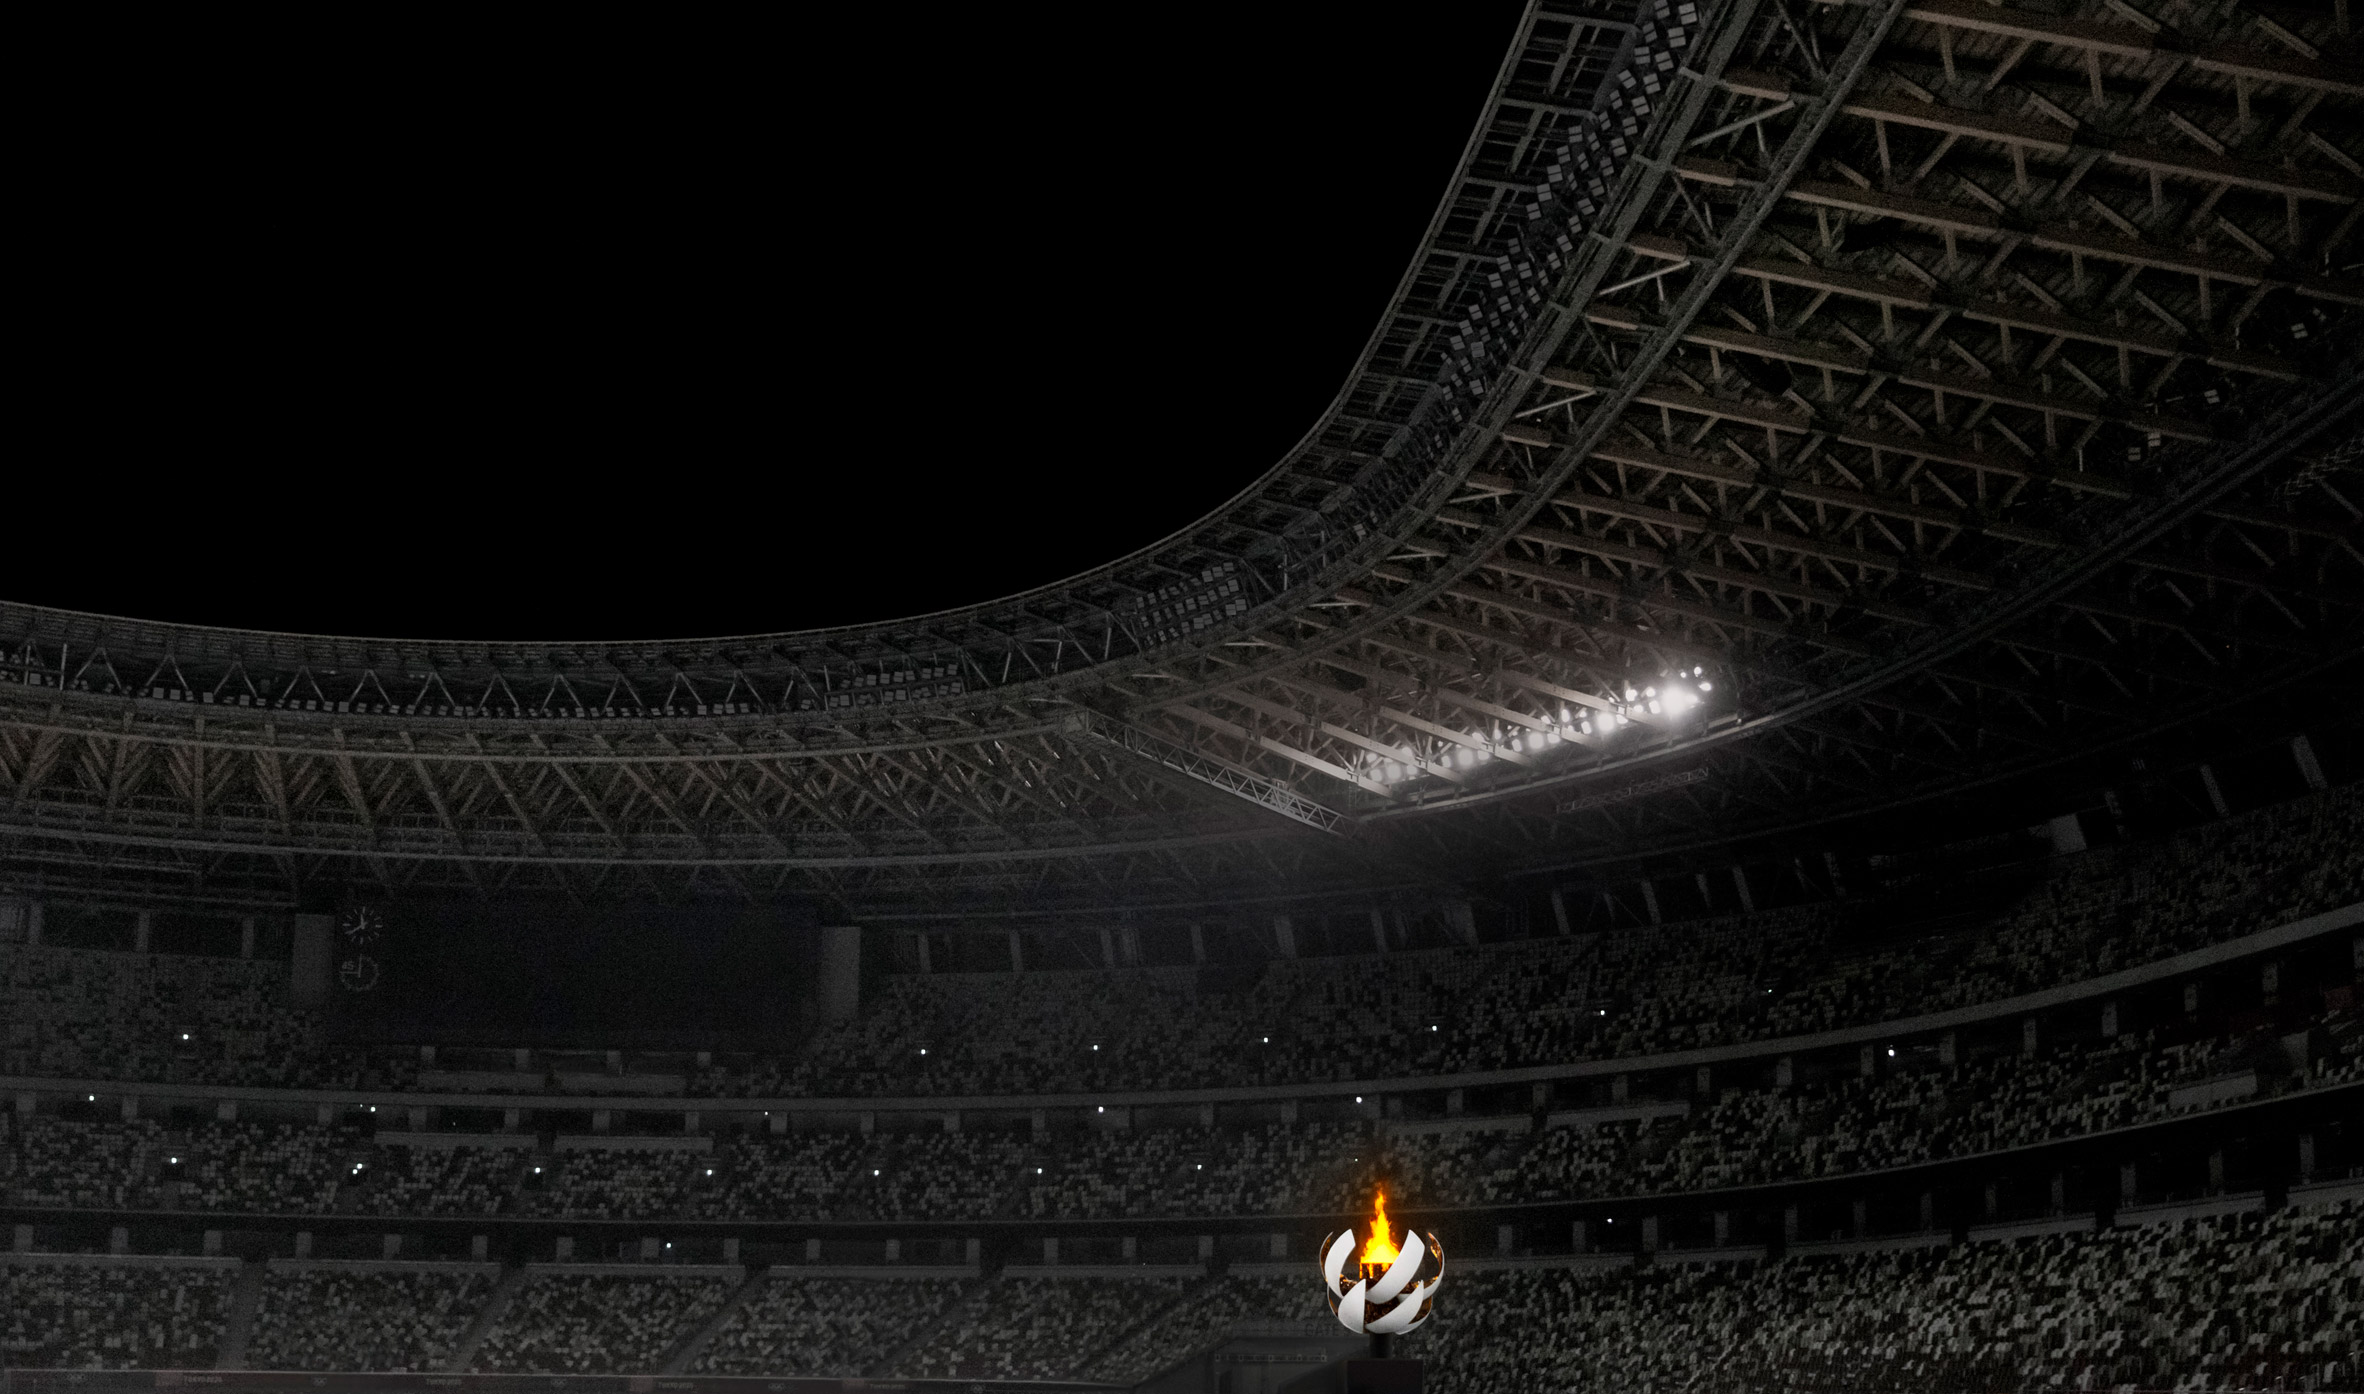 Olympic stadium with Olympic flame